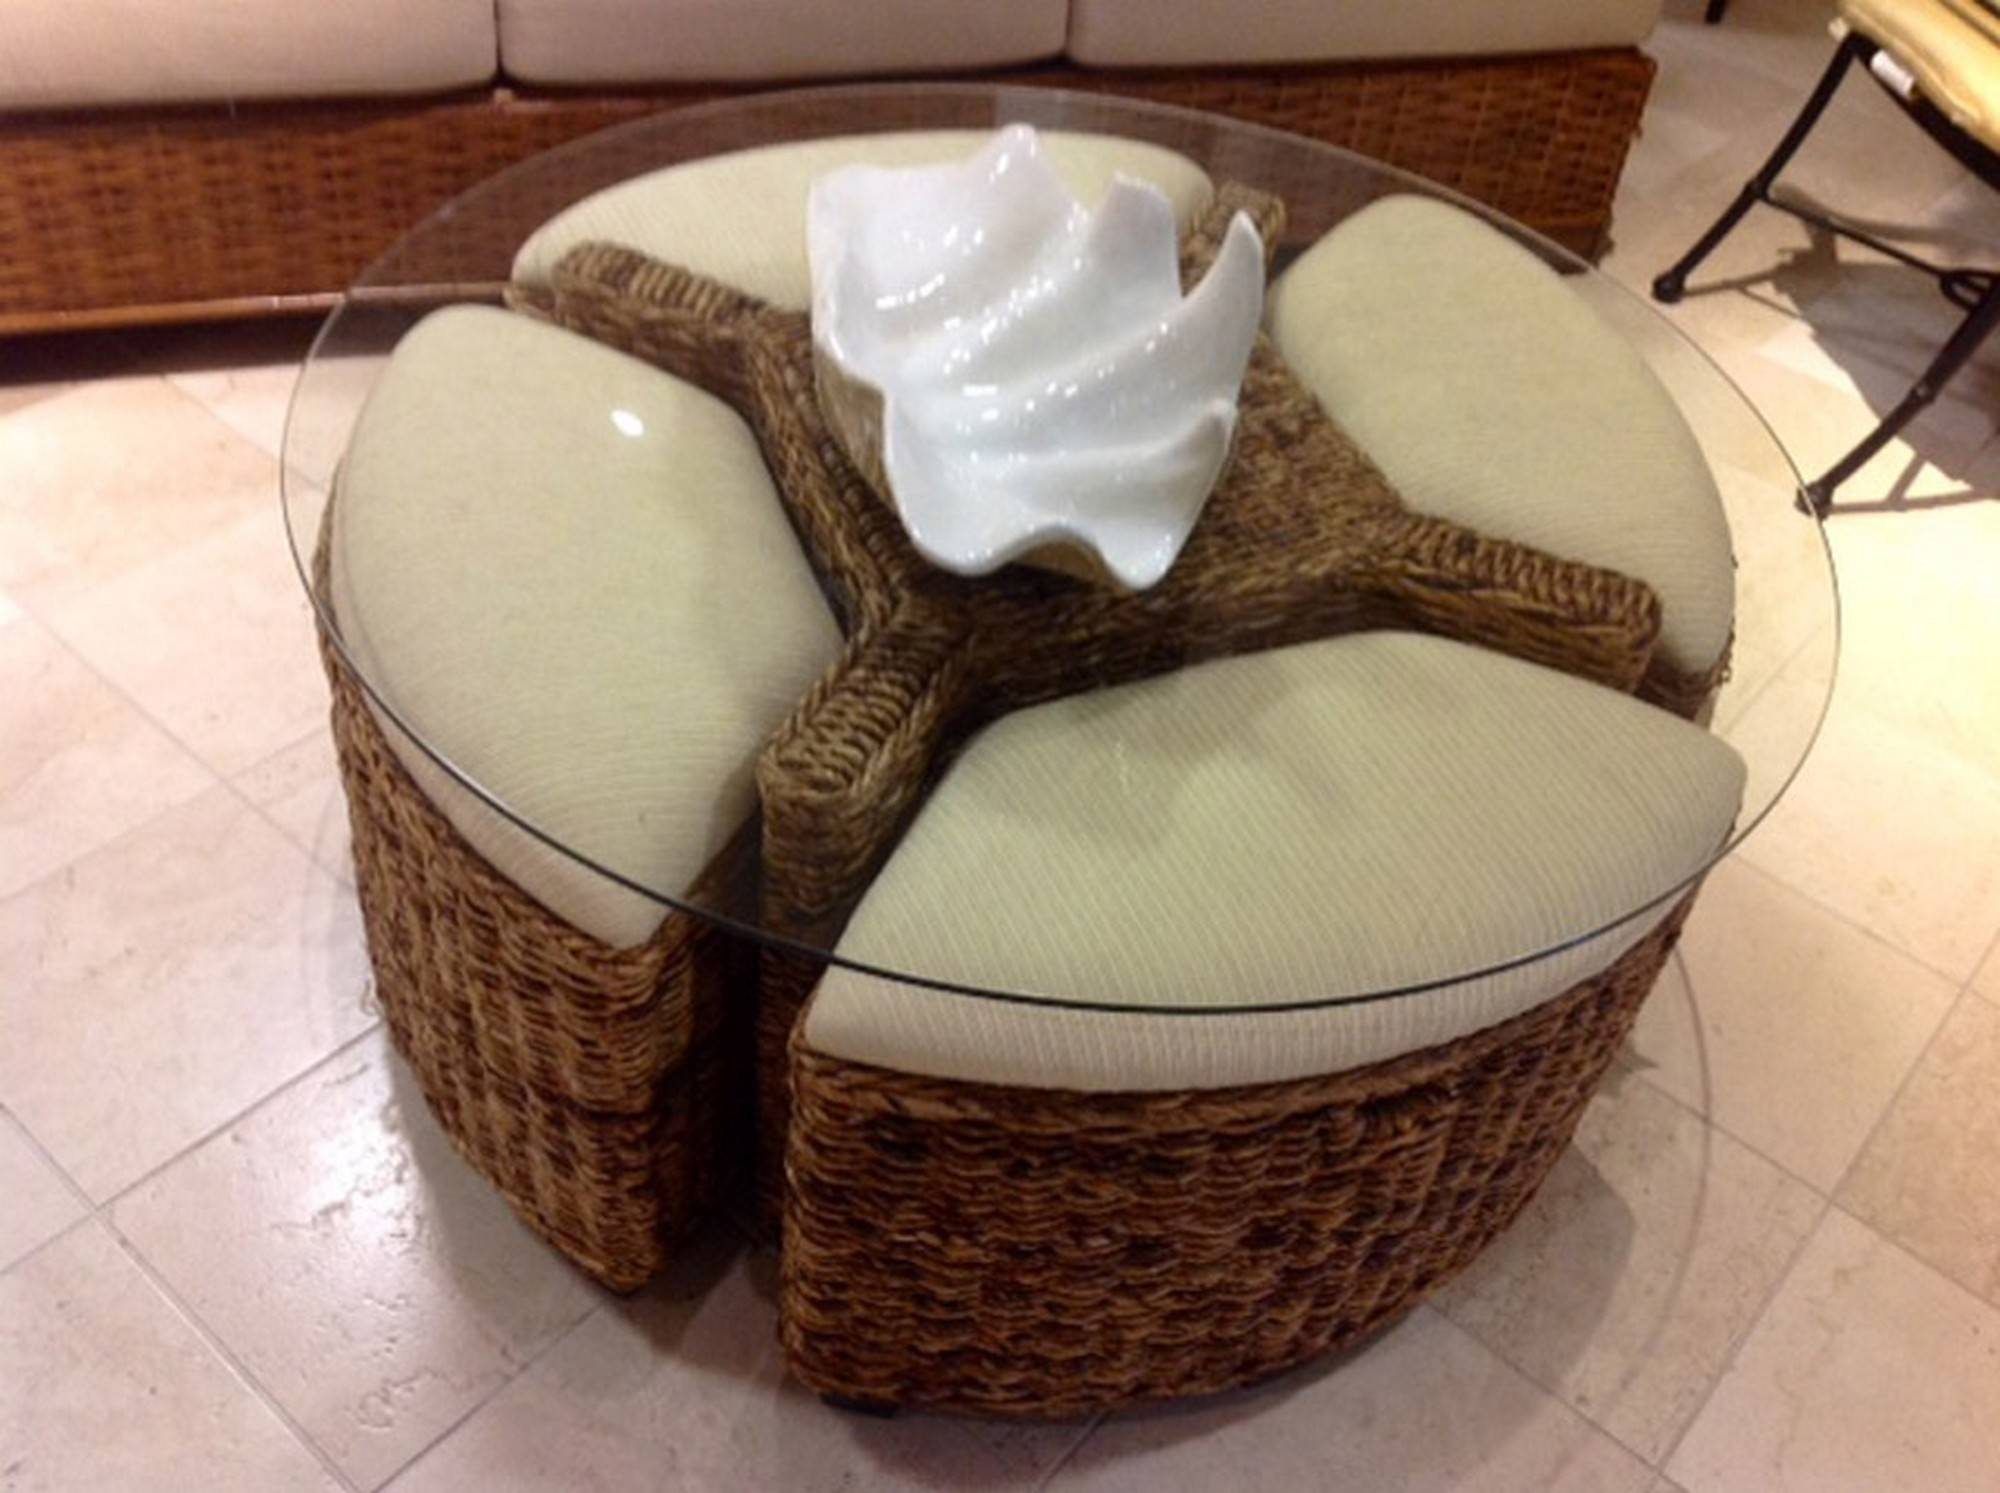 Furniture: Luxury Coffee Table With Stools For Living Room inside Square Coffee Tables With Storages (Image 15 of 30)